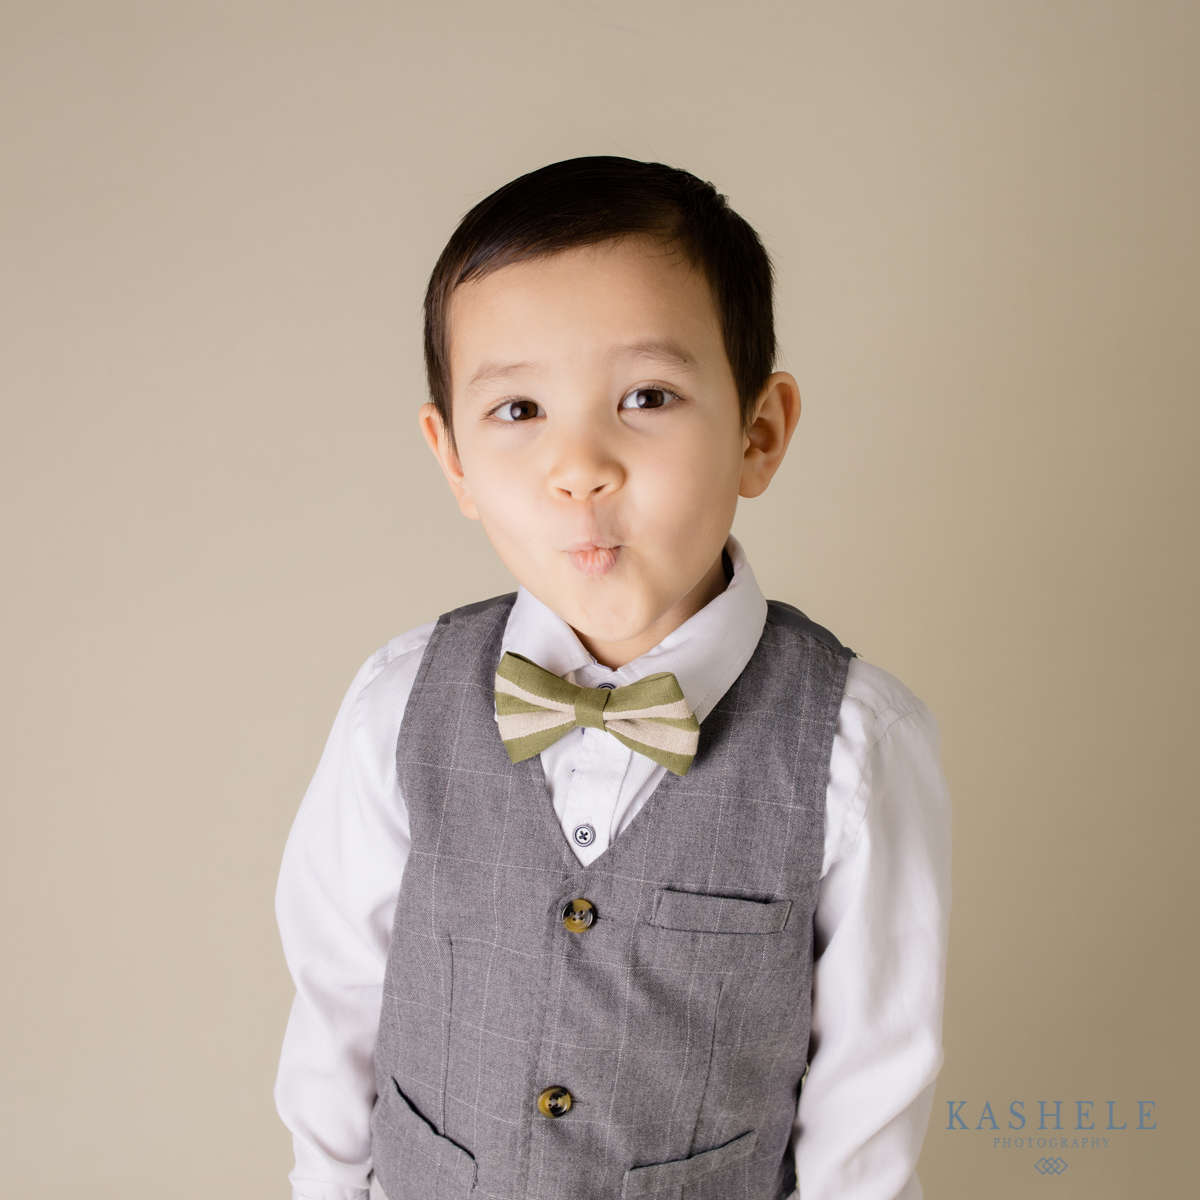 Image of little boy making a kissy face in a St. Pactrick's Day bowtie